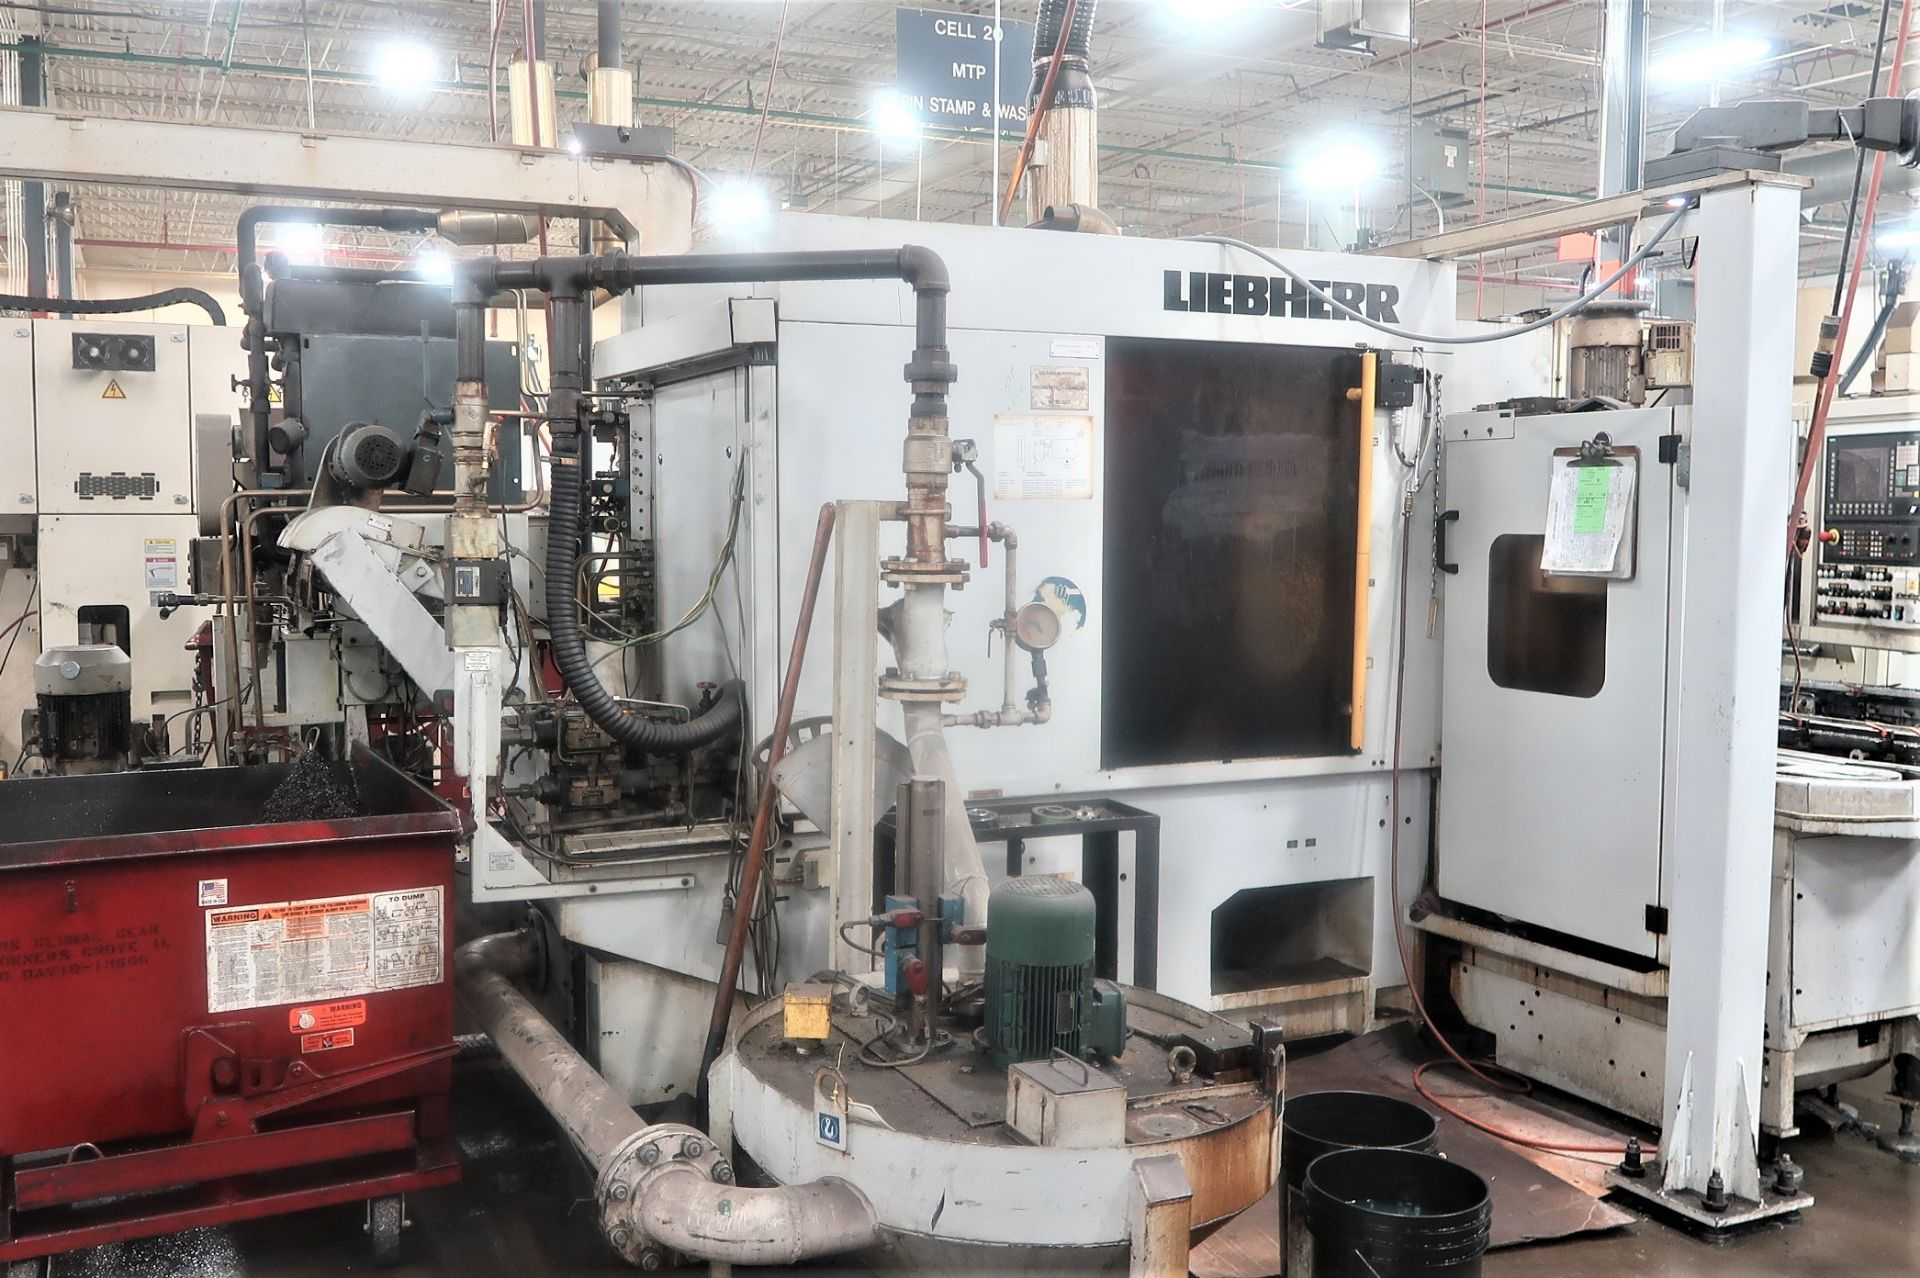 Lot 18B - Liebherr LC153 6-Axis CNC Gear Hobber w/Auto Load Table, S/N 0129